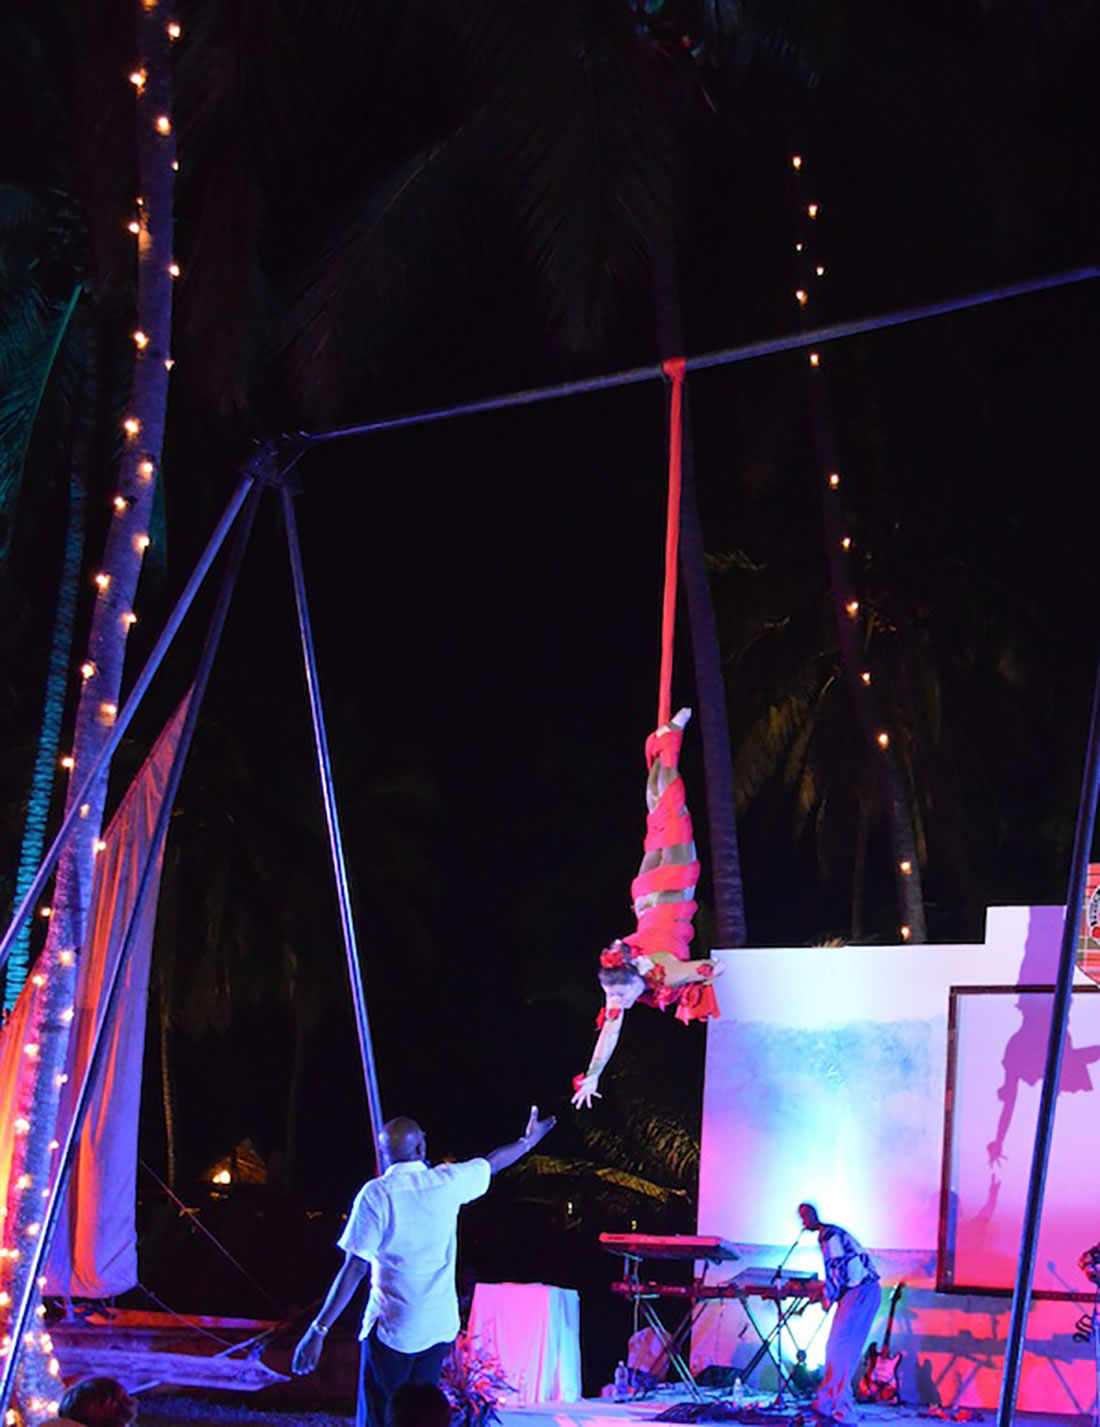 Aerial Shows - Silks Gallery - Zanzibar